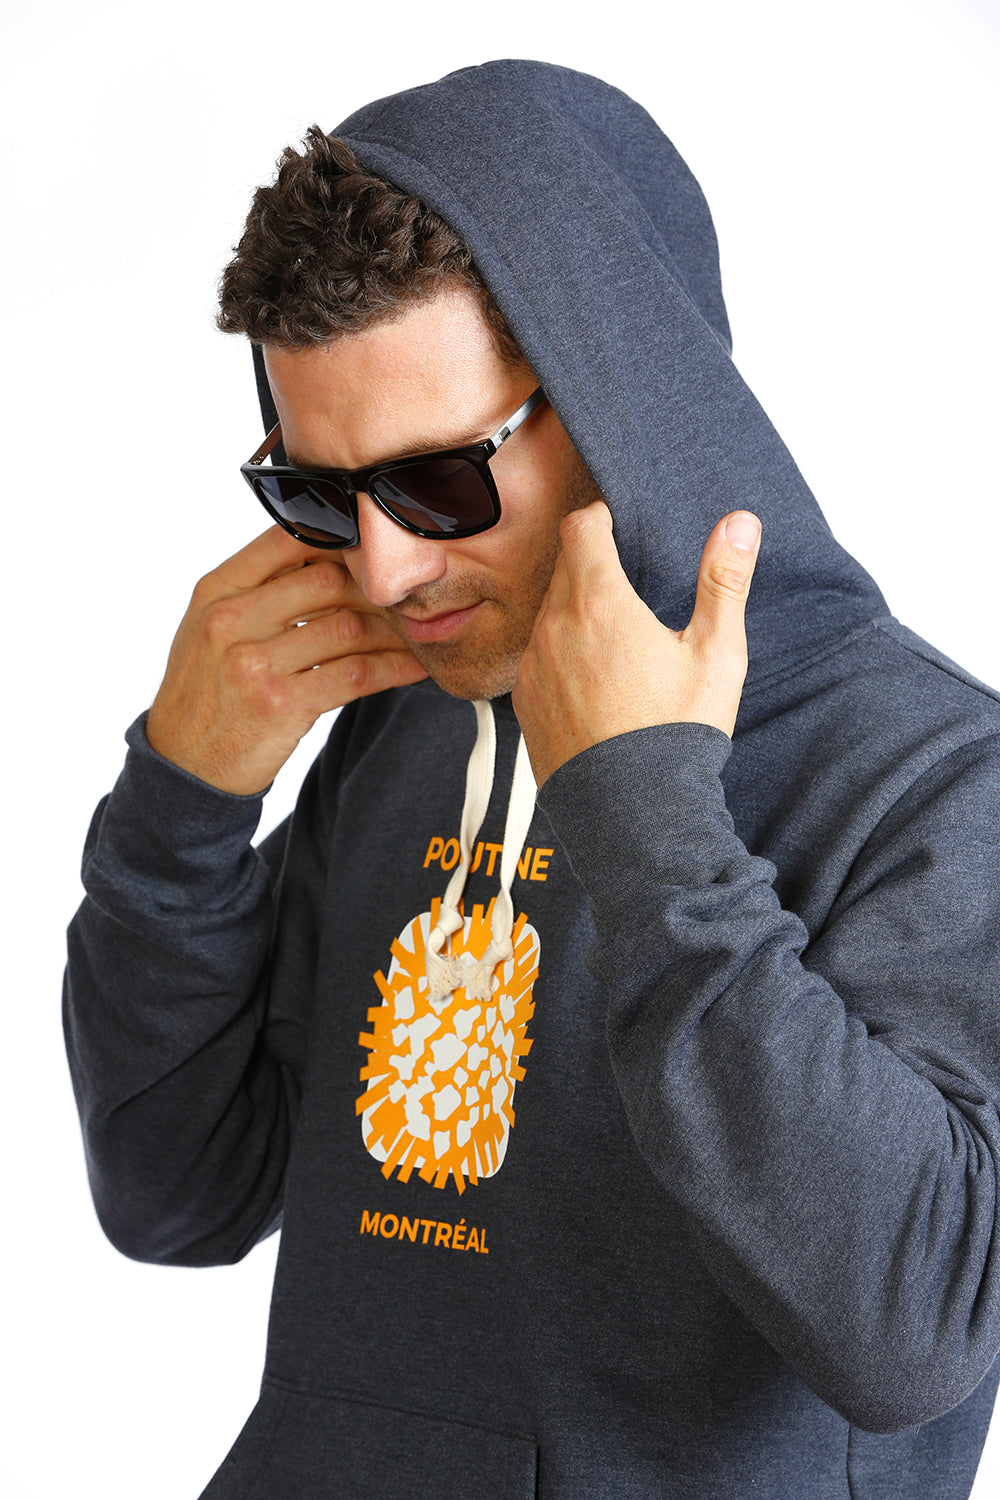 Cool Organic hoodie with Poutine illustration